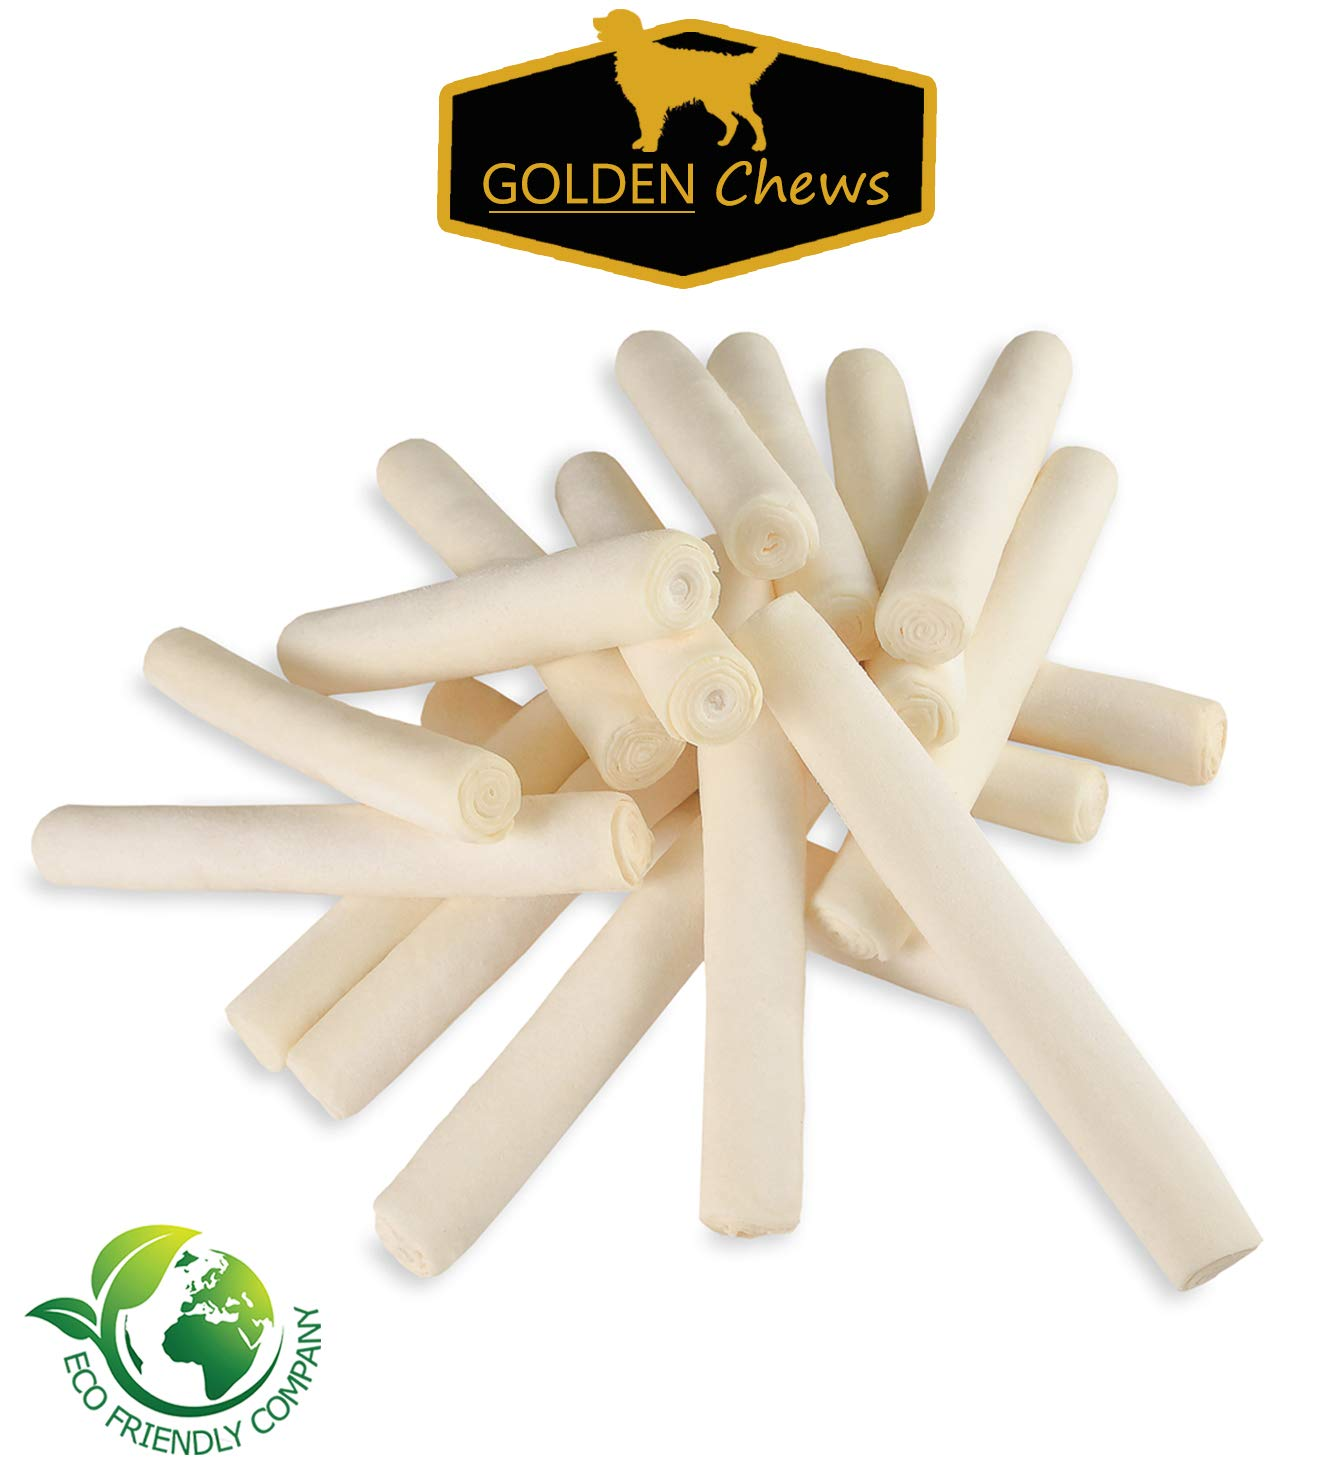 Golden Chews Retriever roll 7-8 Extra Thick by Great Value Treat (20 Pack)